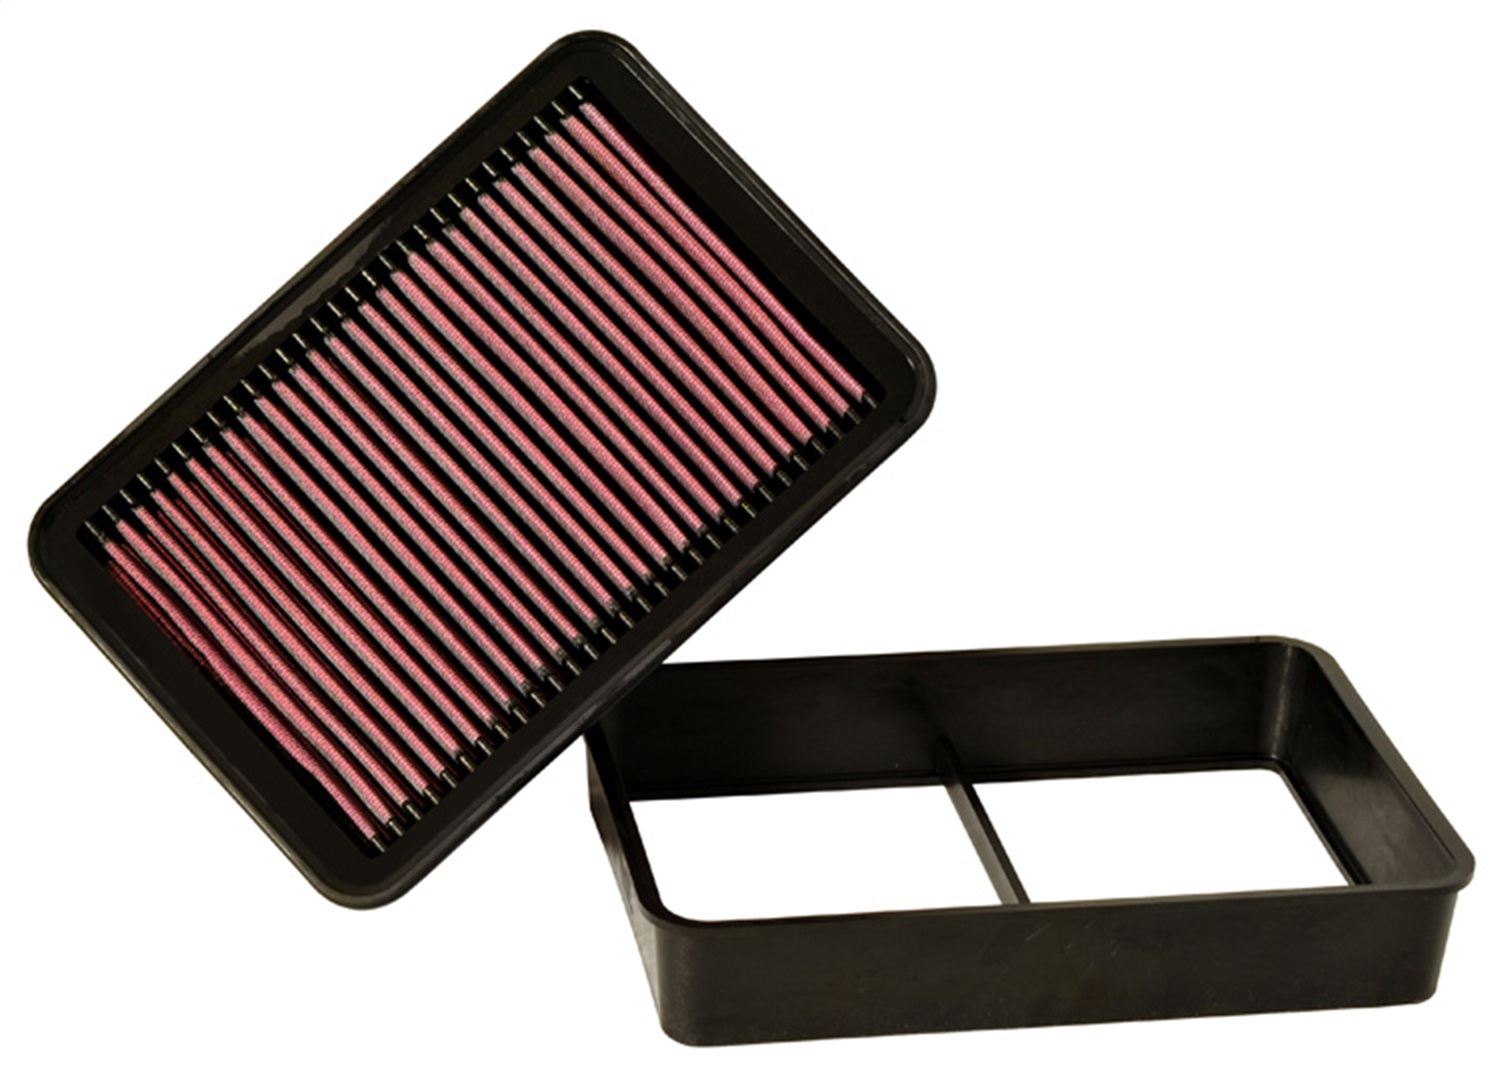 K&N Filters 33-2392 Air Filter Fits 07-14 Lancer Outlander Outlander Sport RVR 33-2392